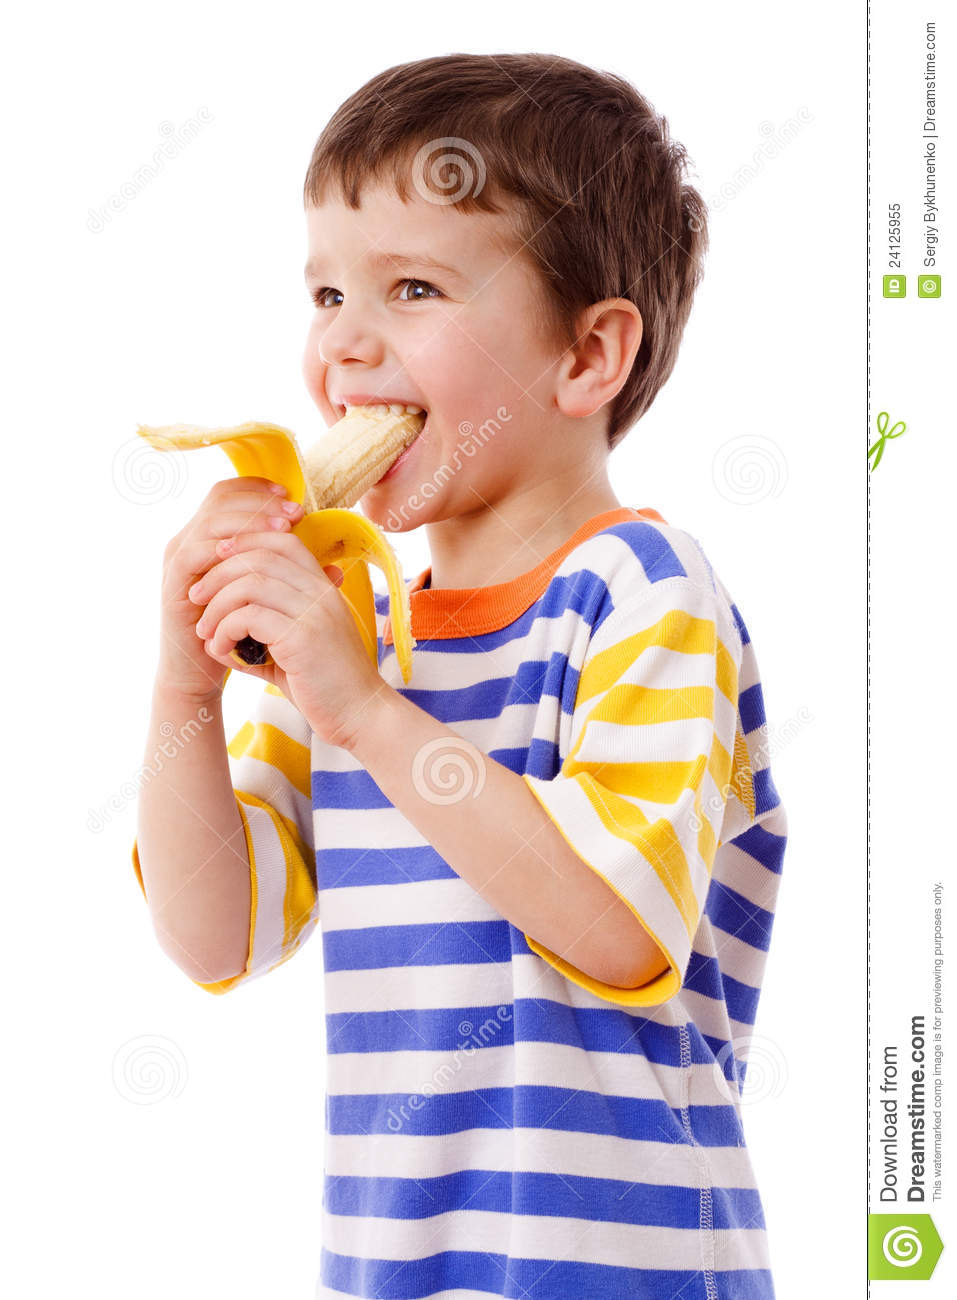 Boy Eating A Banana Royalty Free Stock Photo - Image: 24125955